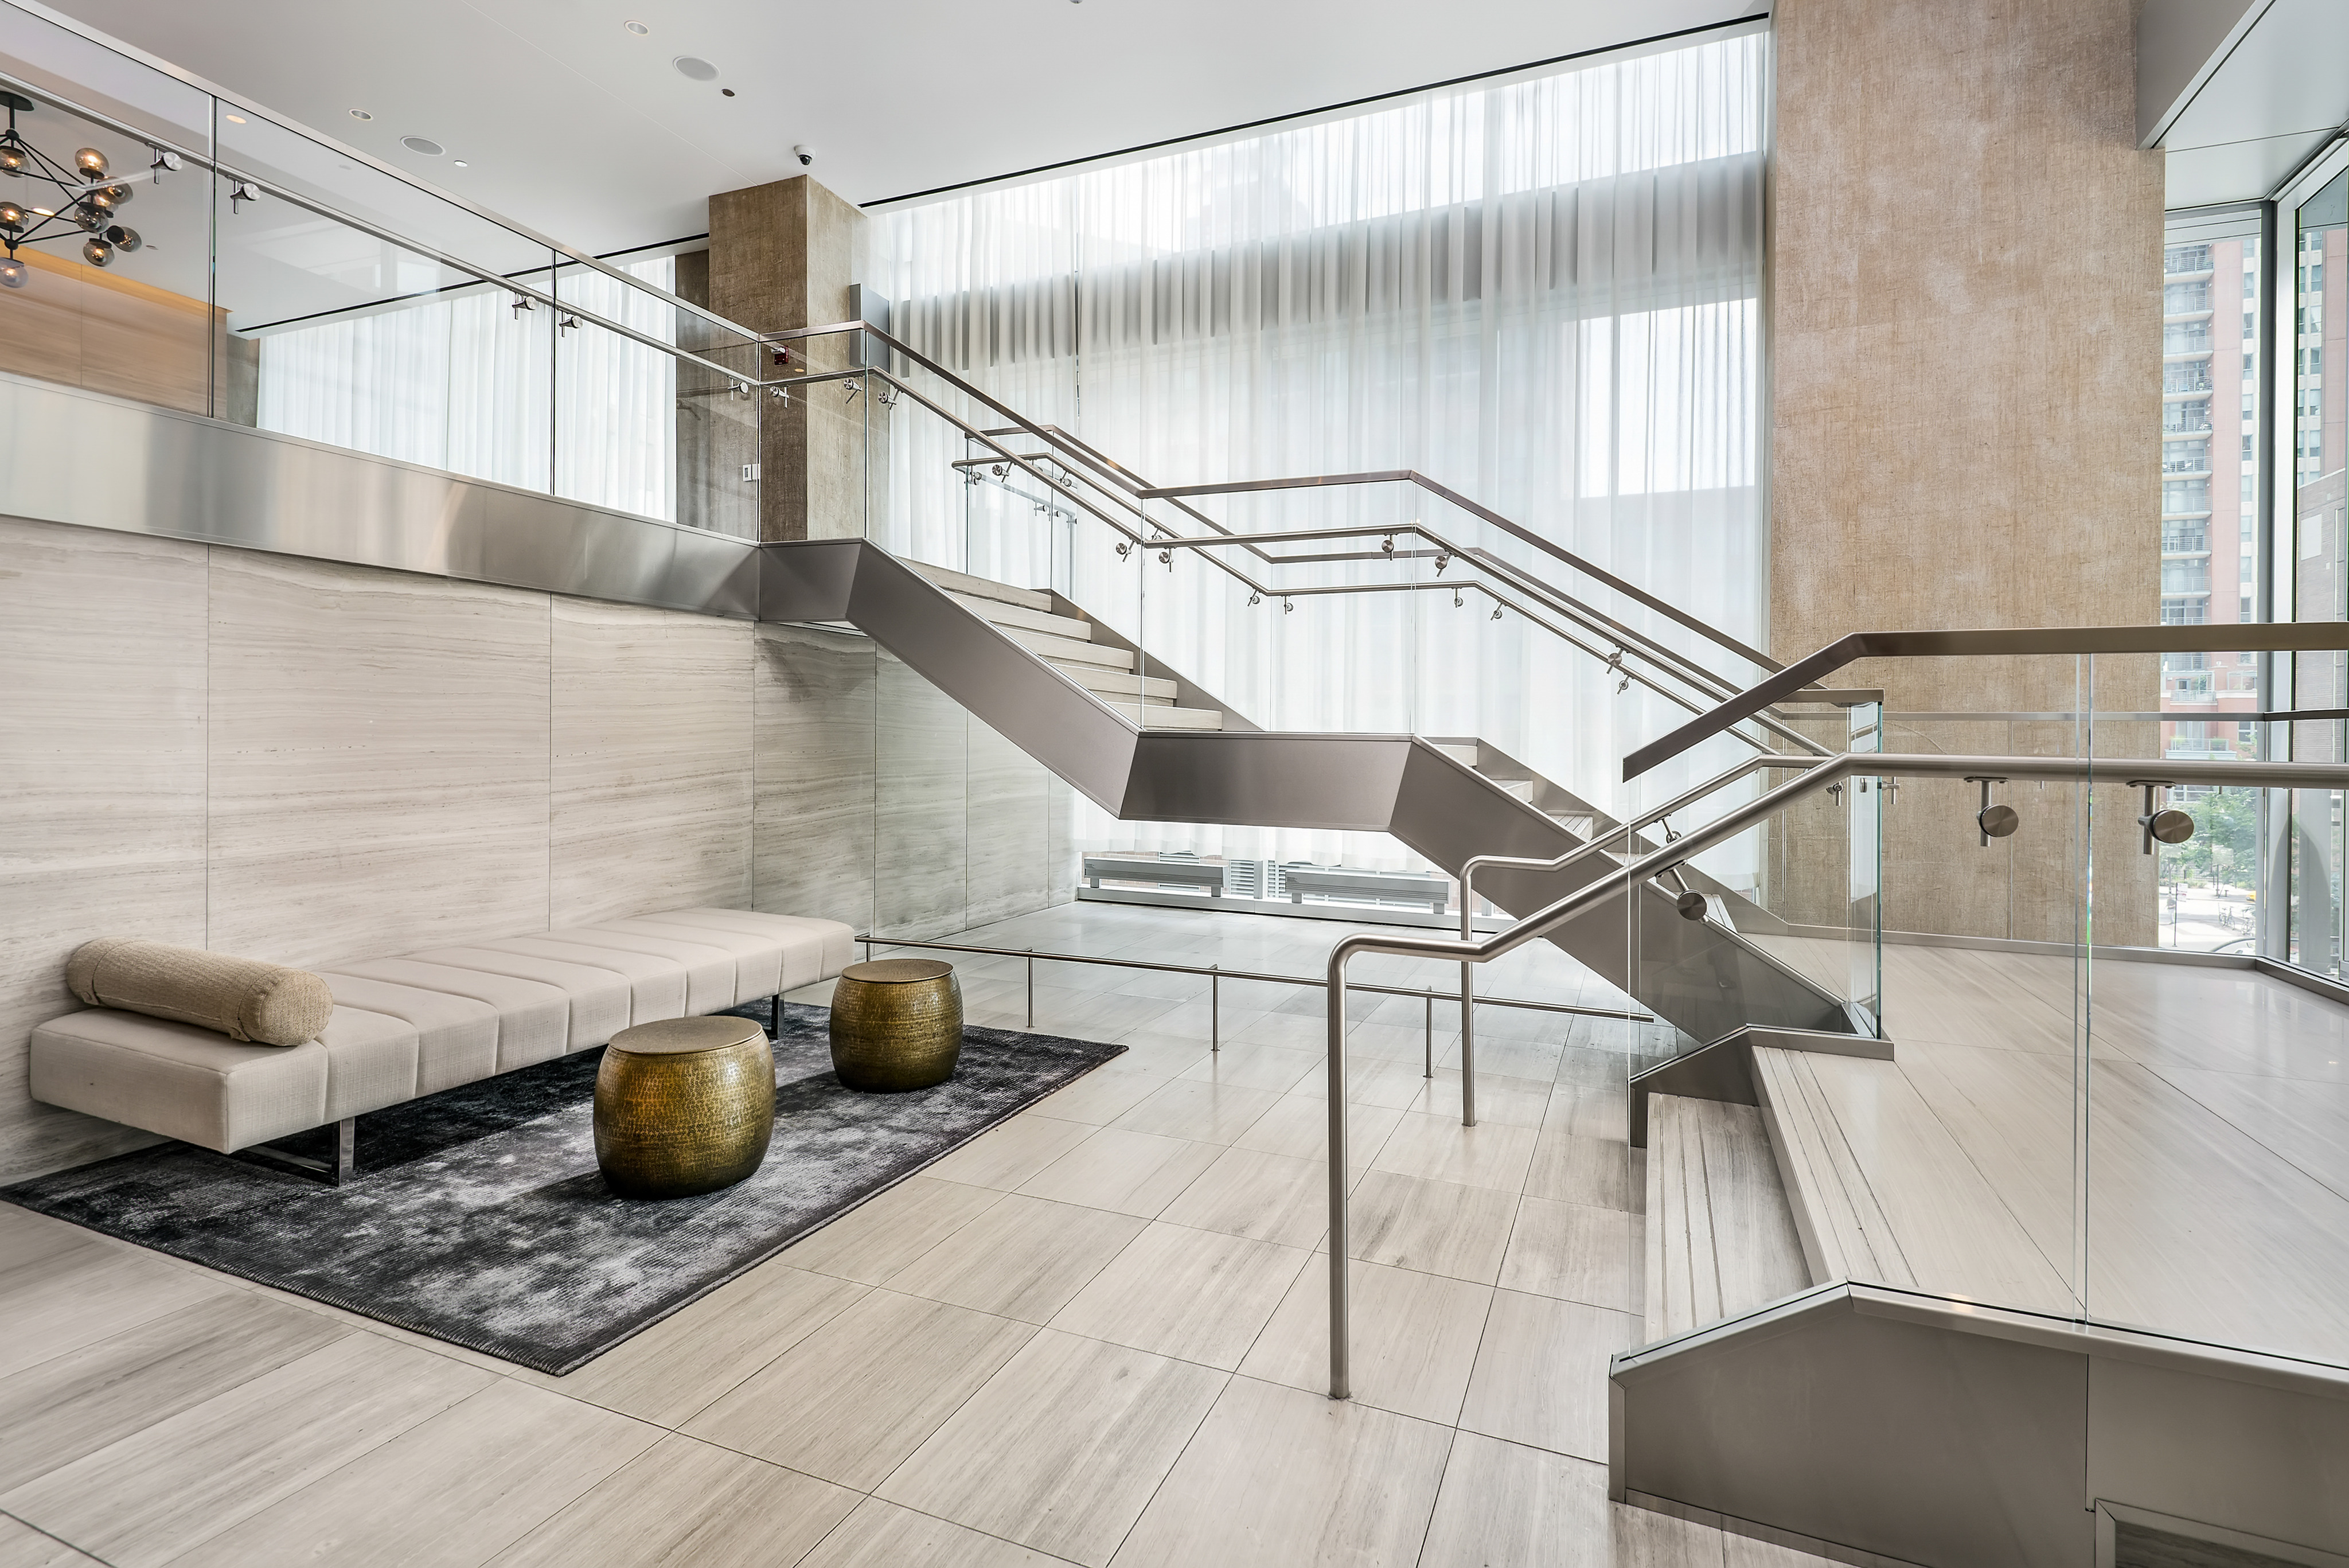 Lobby with stairs leading to a lounge area